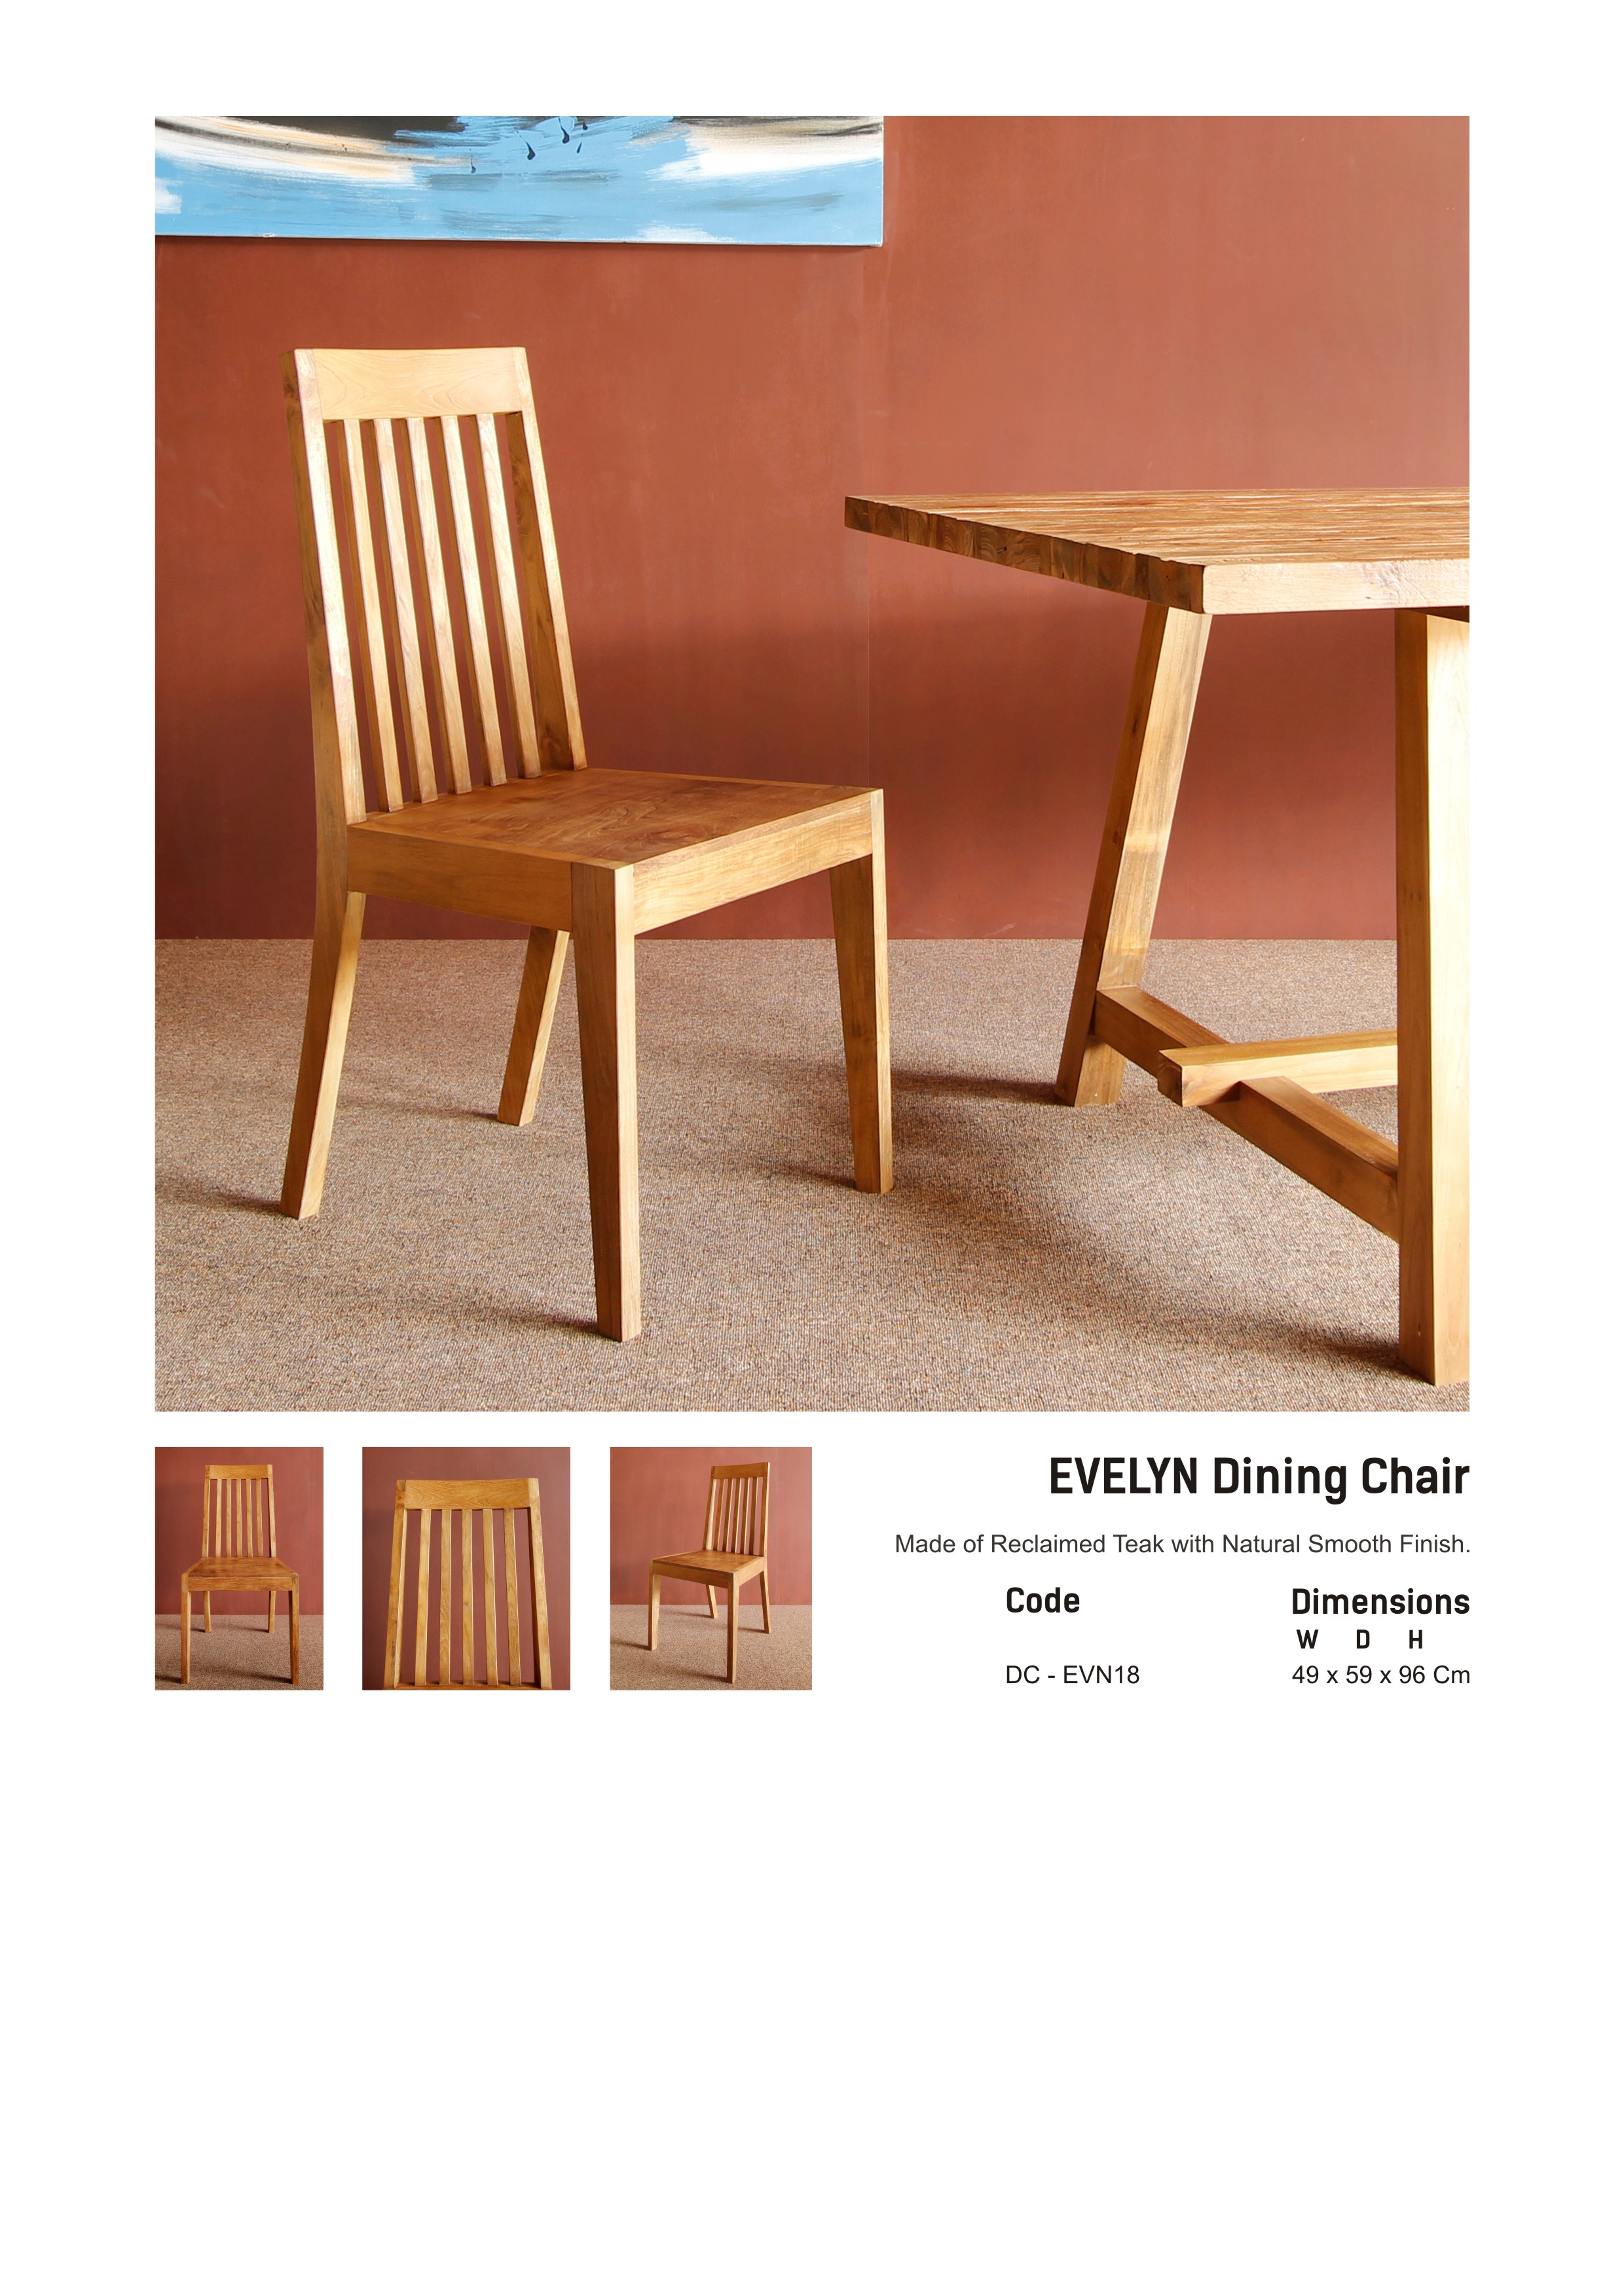 18. EVELYN Dinning Chair